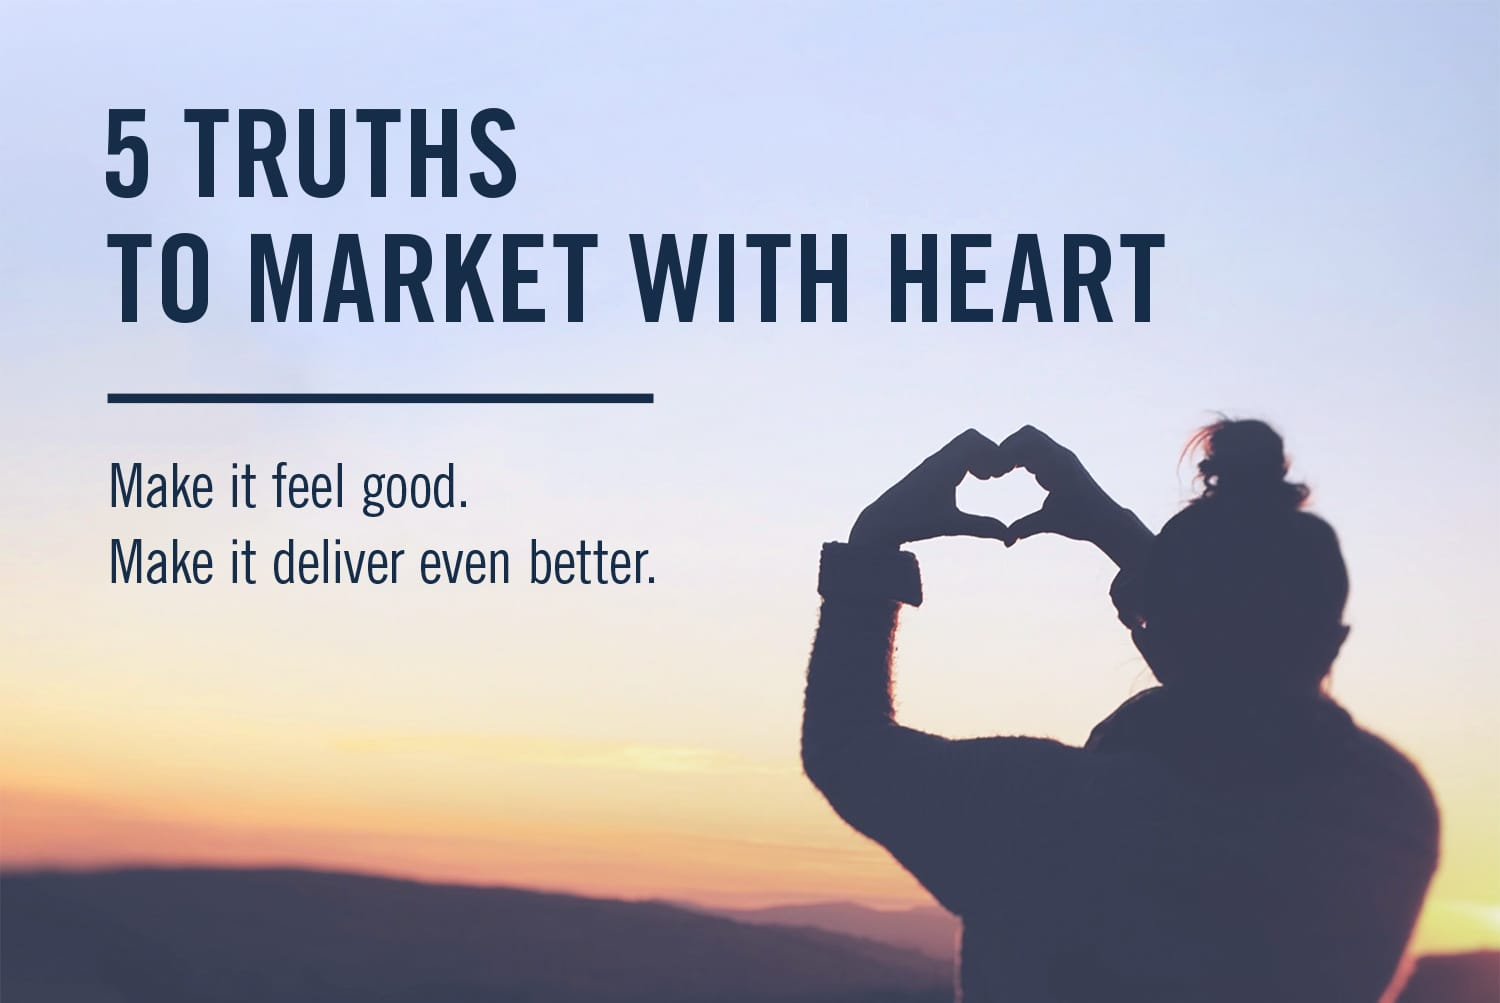 5-truths-to-market-with-heart.jpg